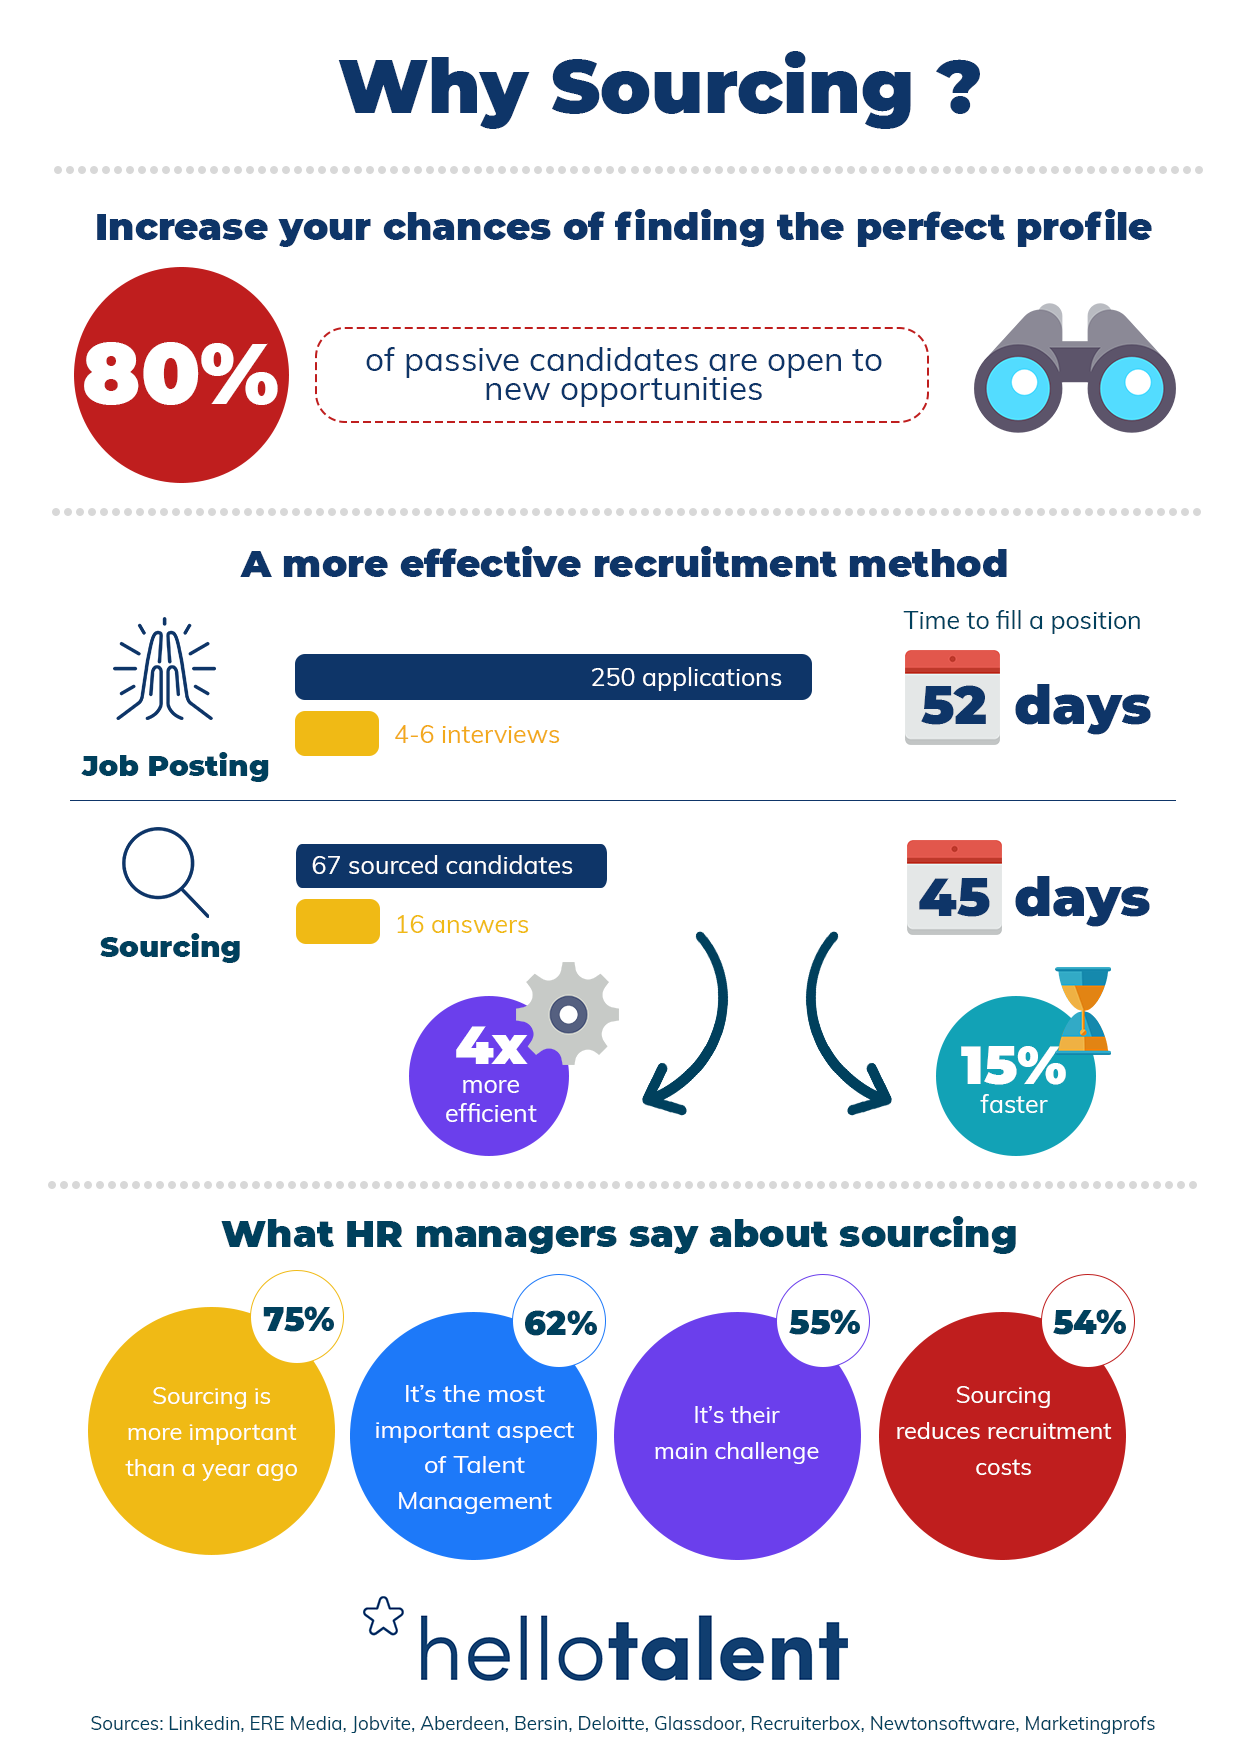 e-recruitment-candidate-sourcing